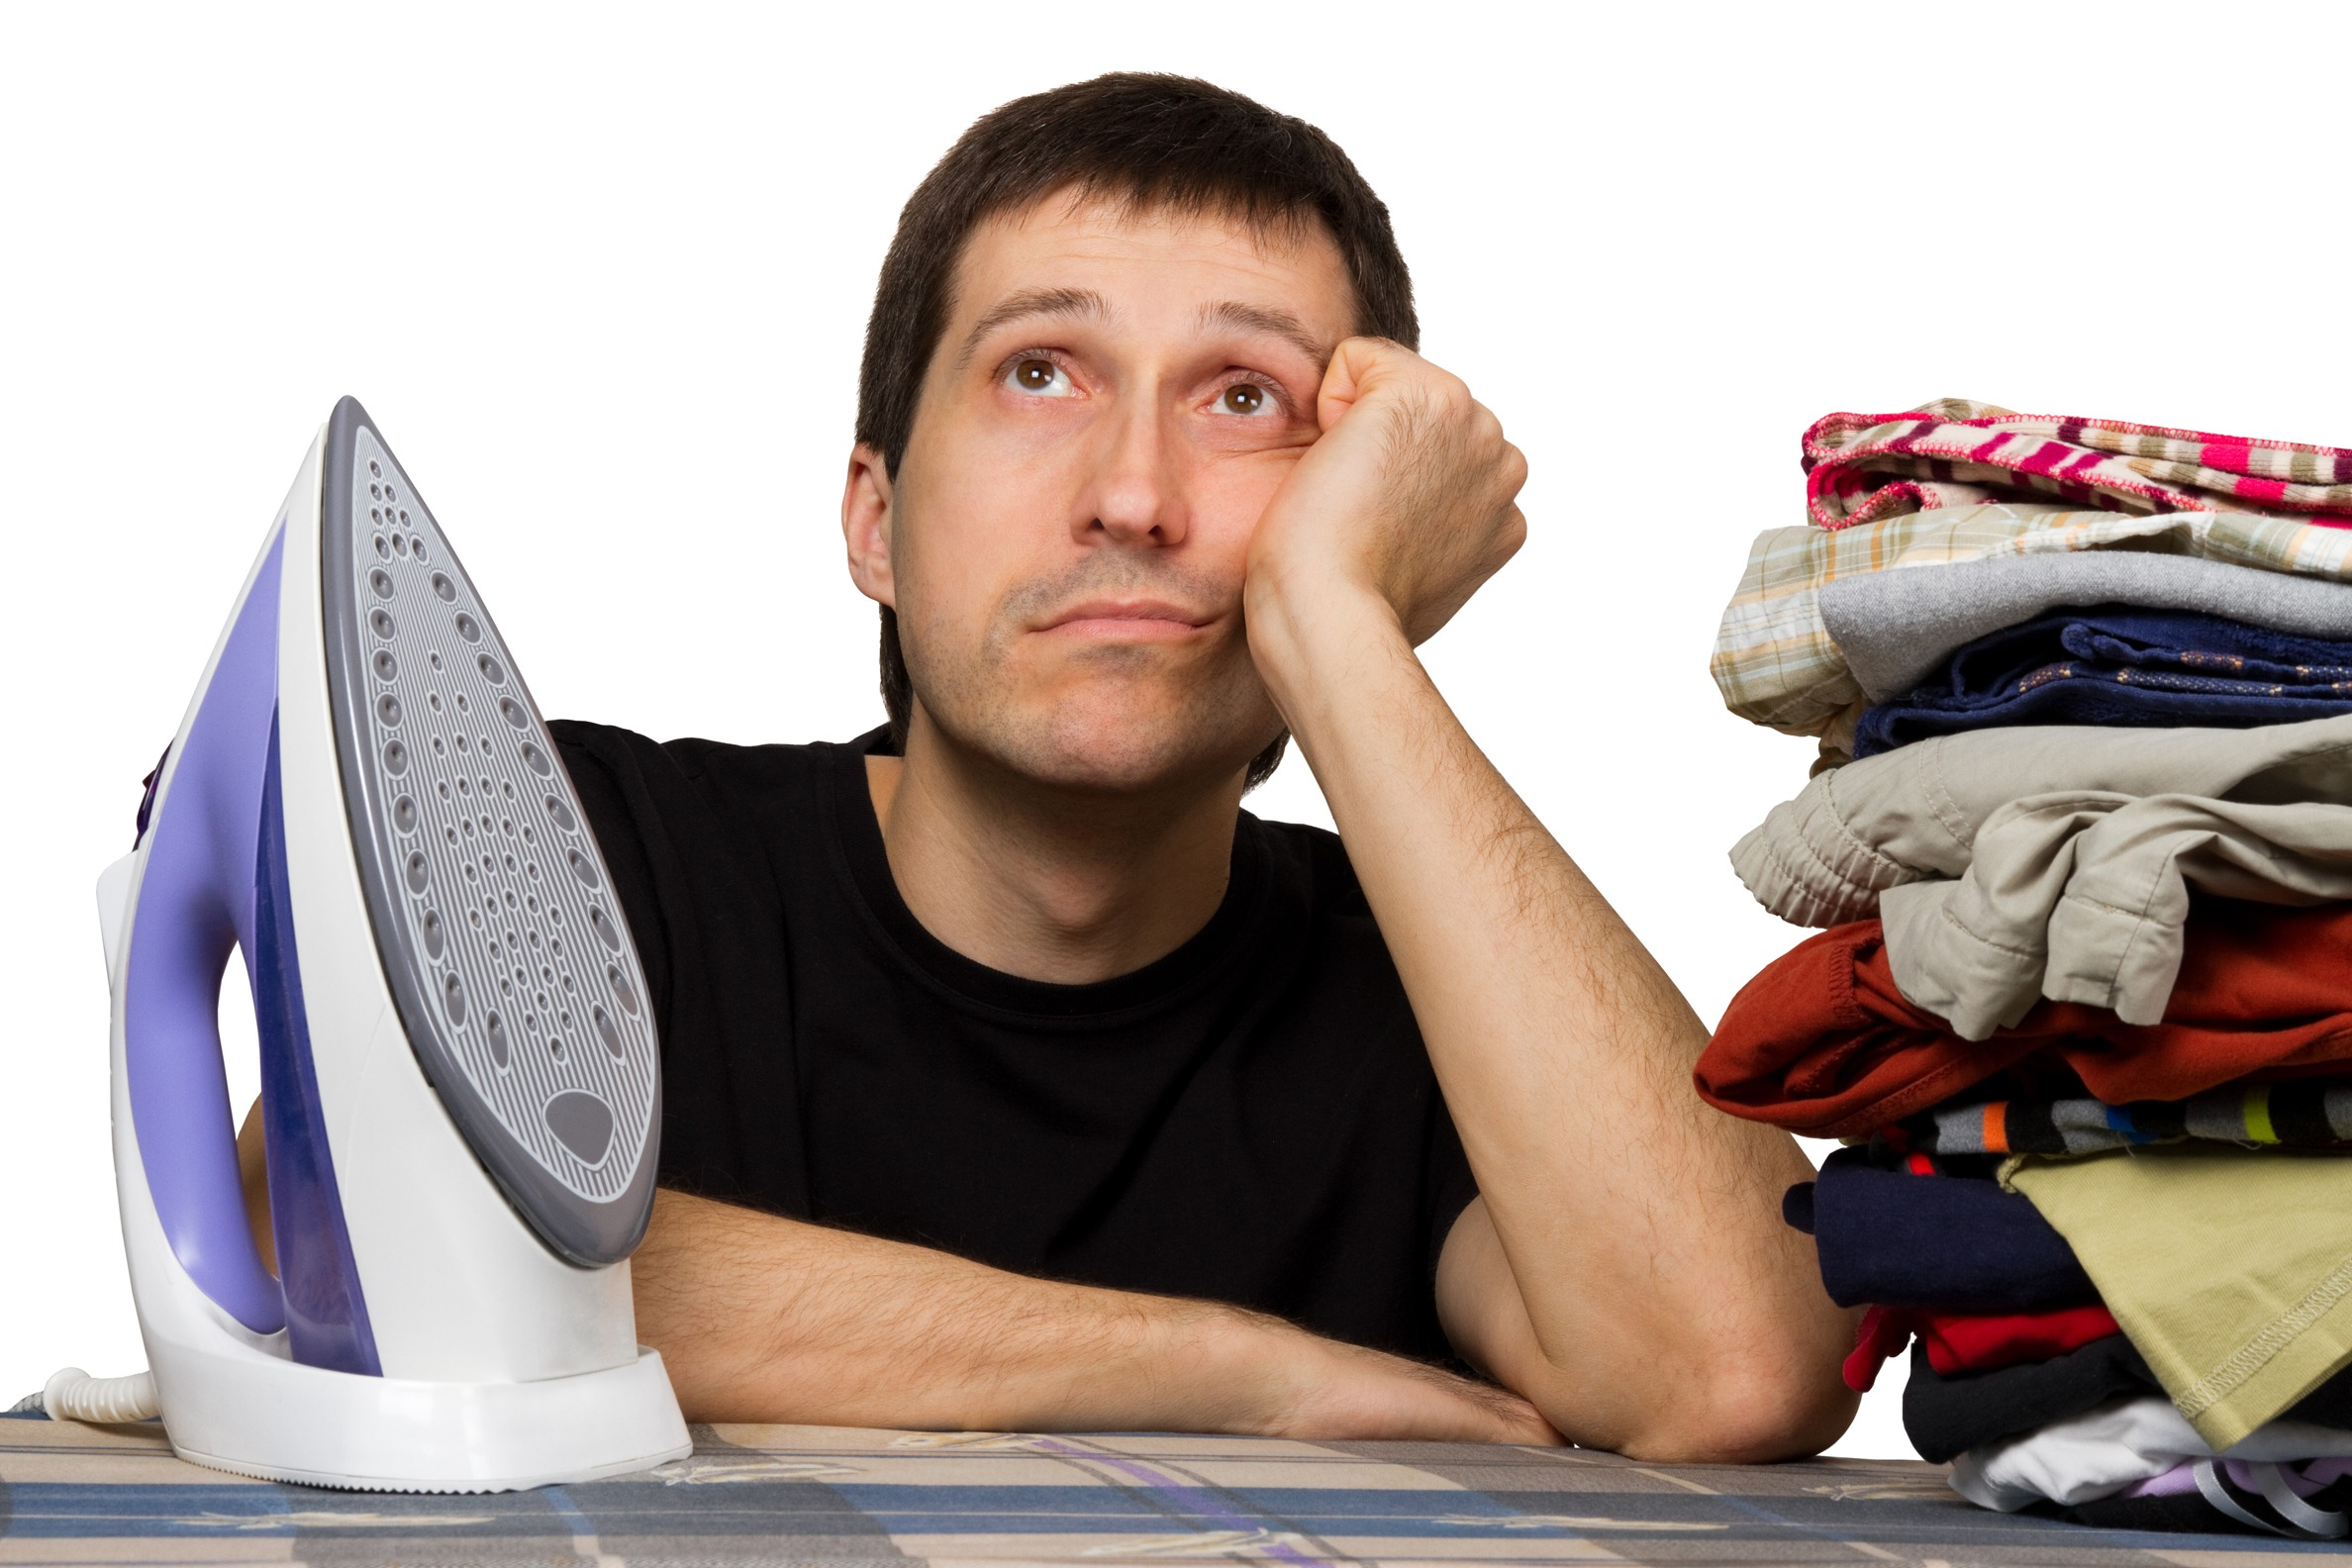 sad man, ironing board, wash clothing and iron, isolated